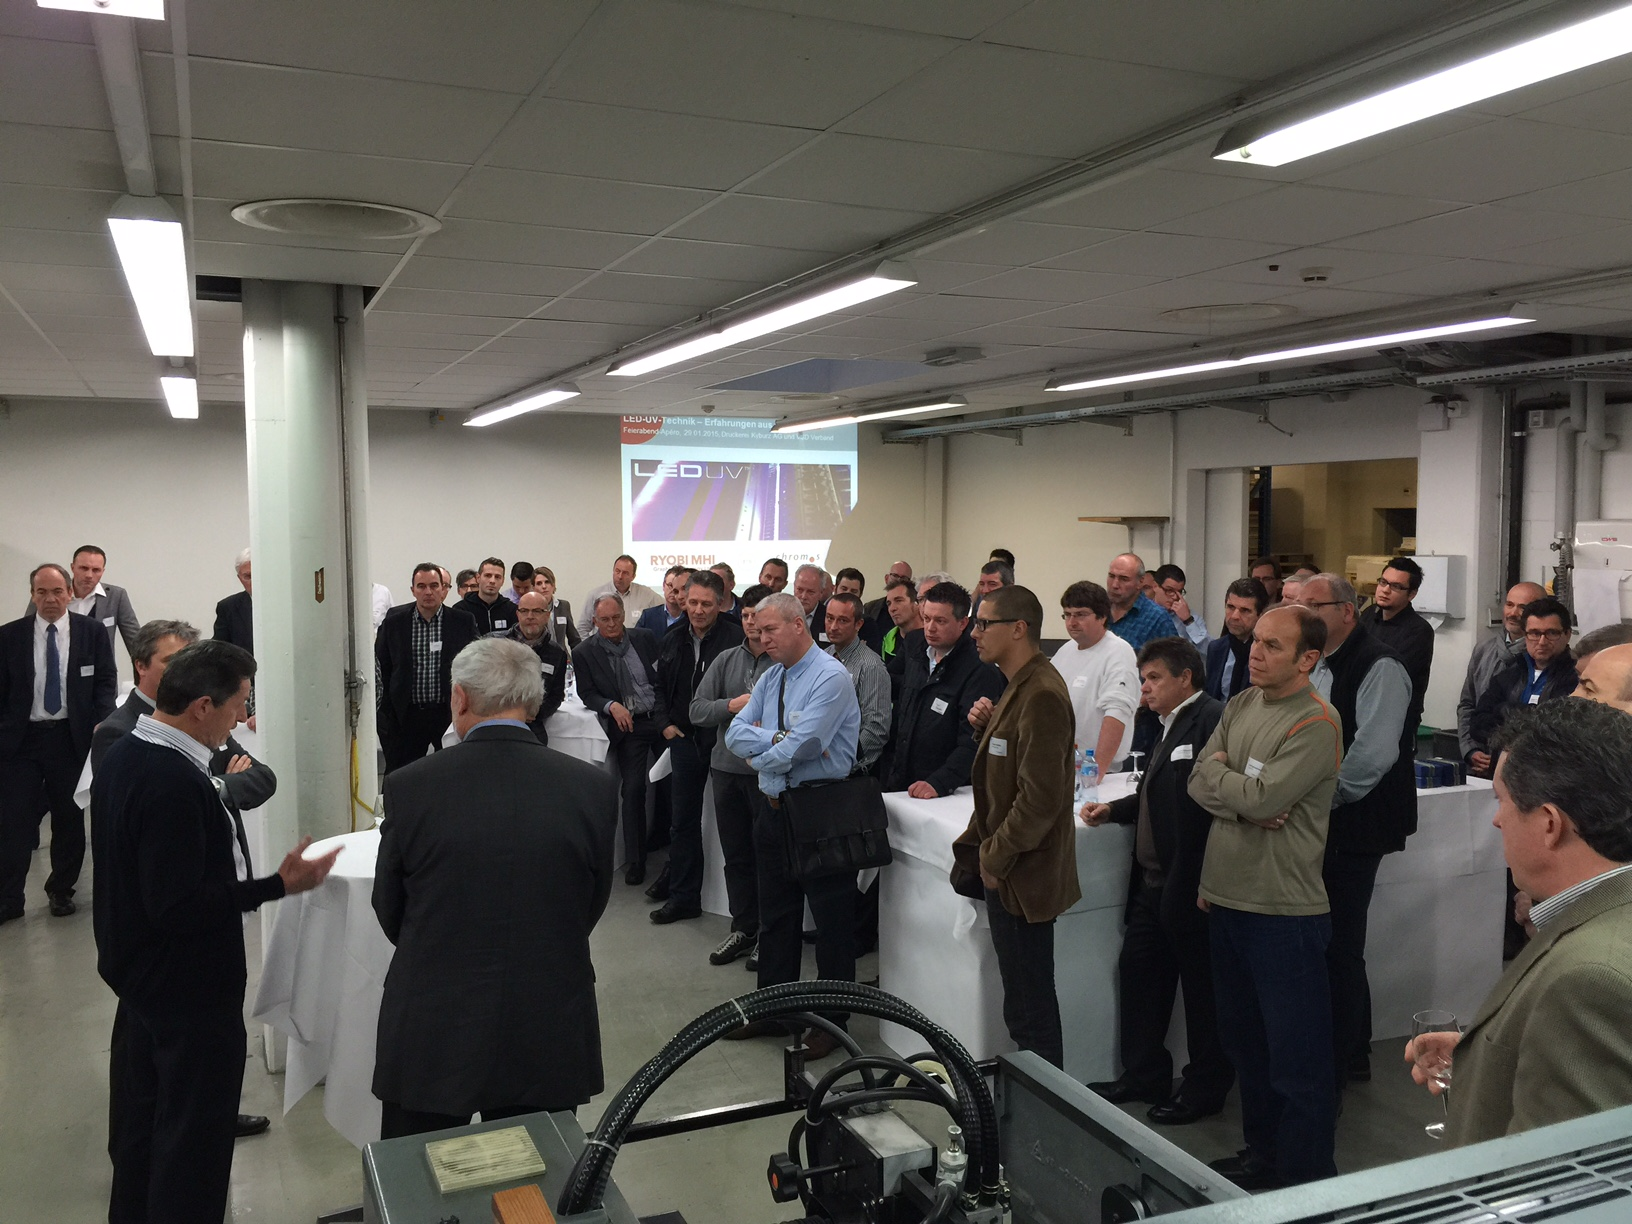 Over 75 visitors attended the first LED-UV Open House in Europe hosted by AMS Reseller Chromos AG and Druckeri Kyburz just outside of Zurich